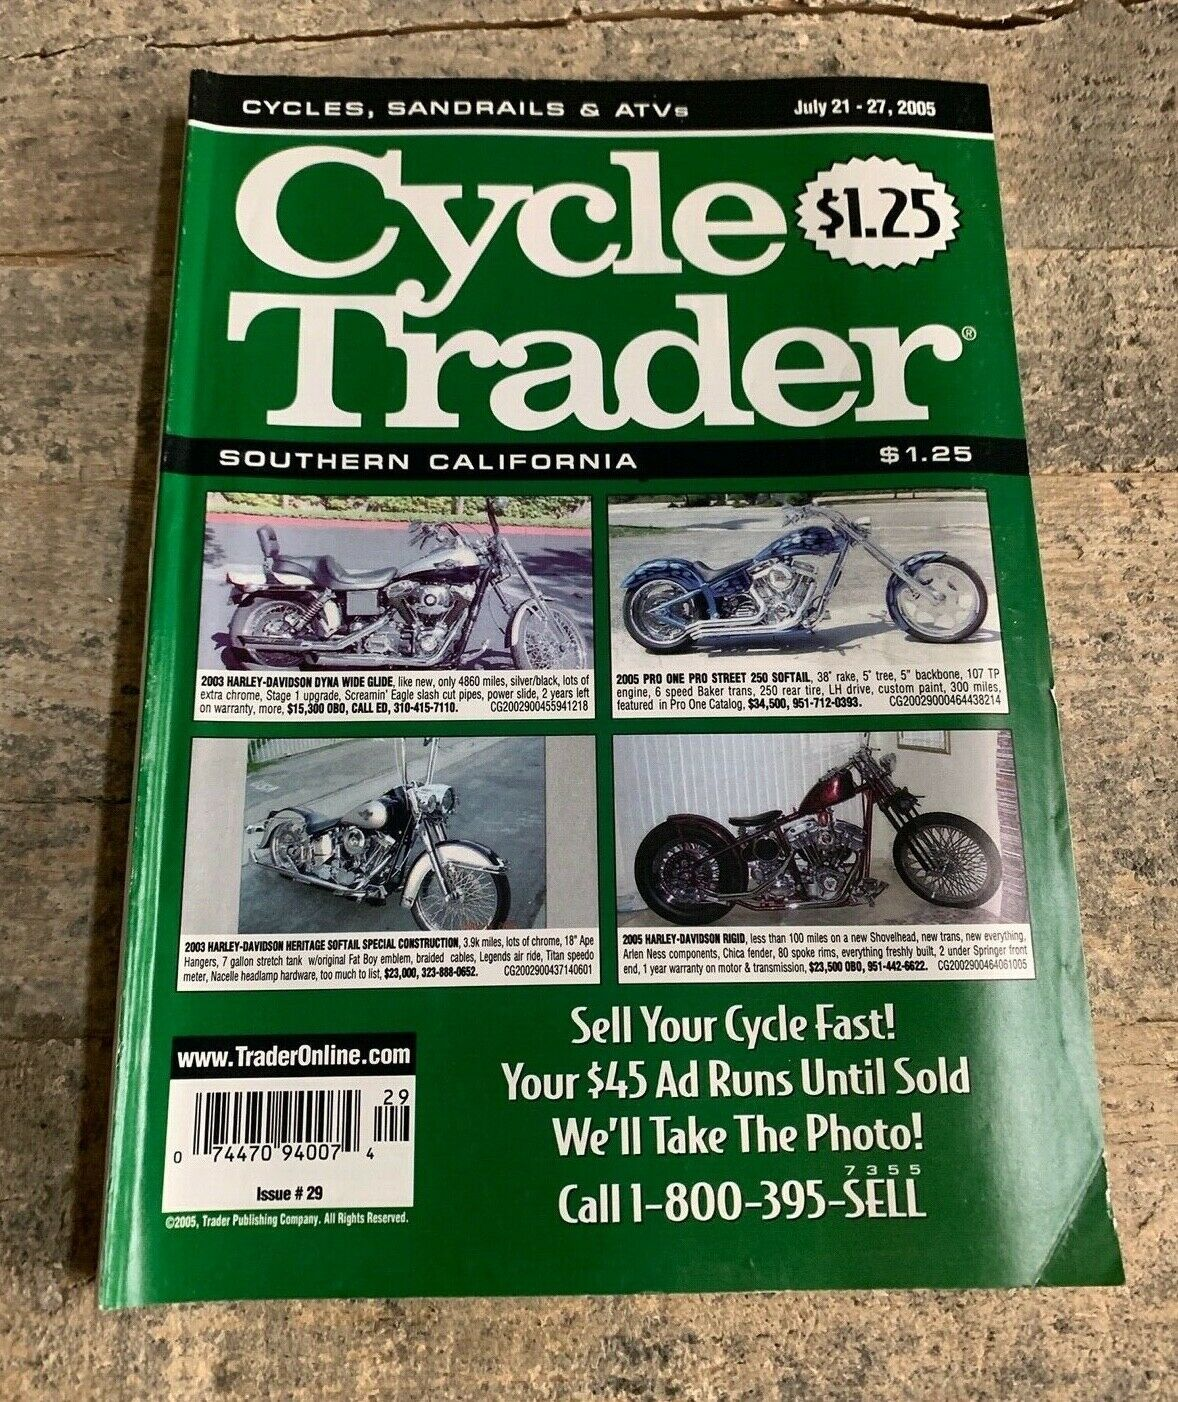 Primary image for Cycle Trader Sandrails, Atv's + Motorcycles Southern California July 21-27 2005